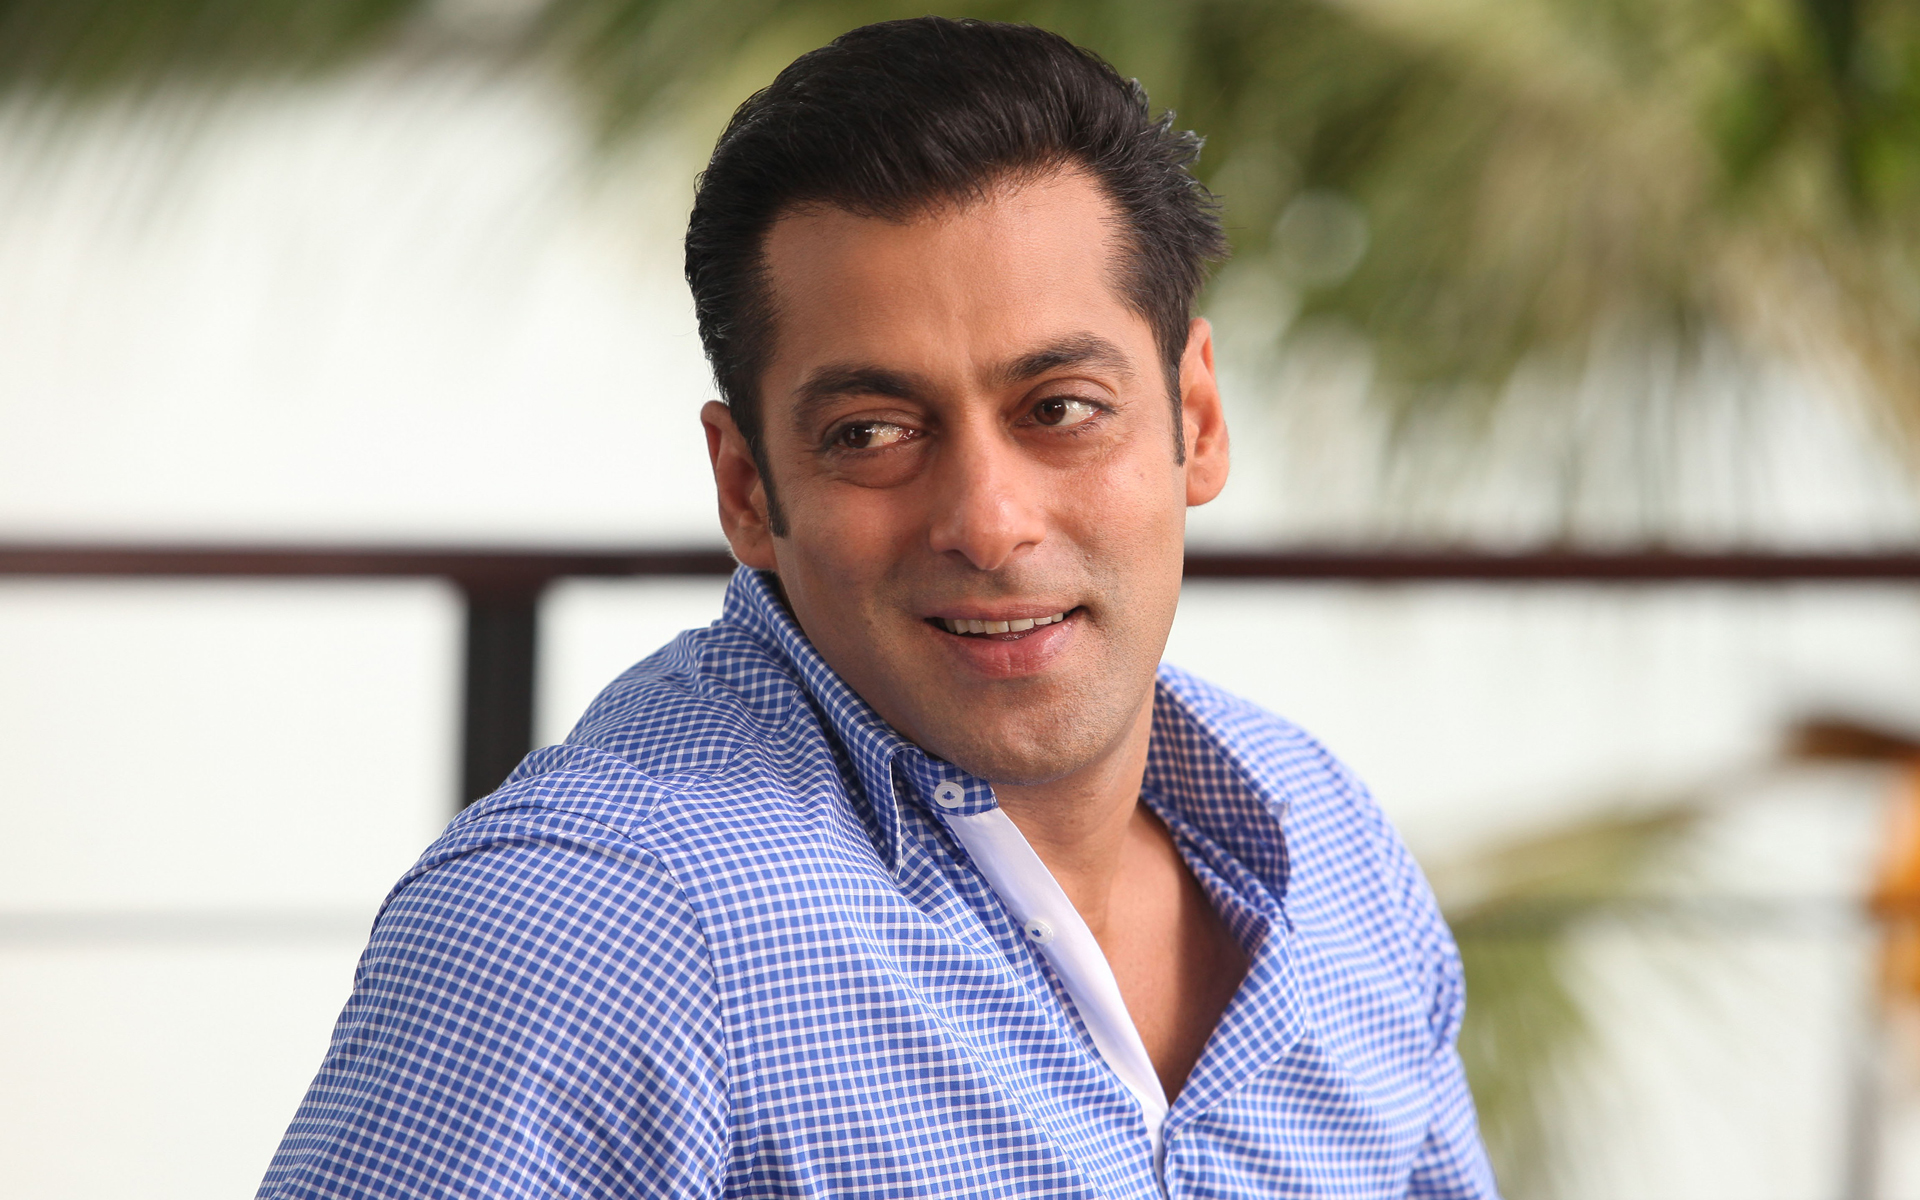 Salman Khan Wallpaper Download HD